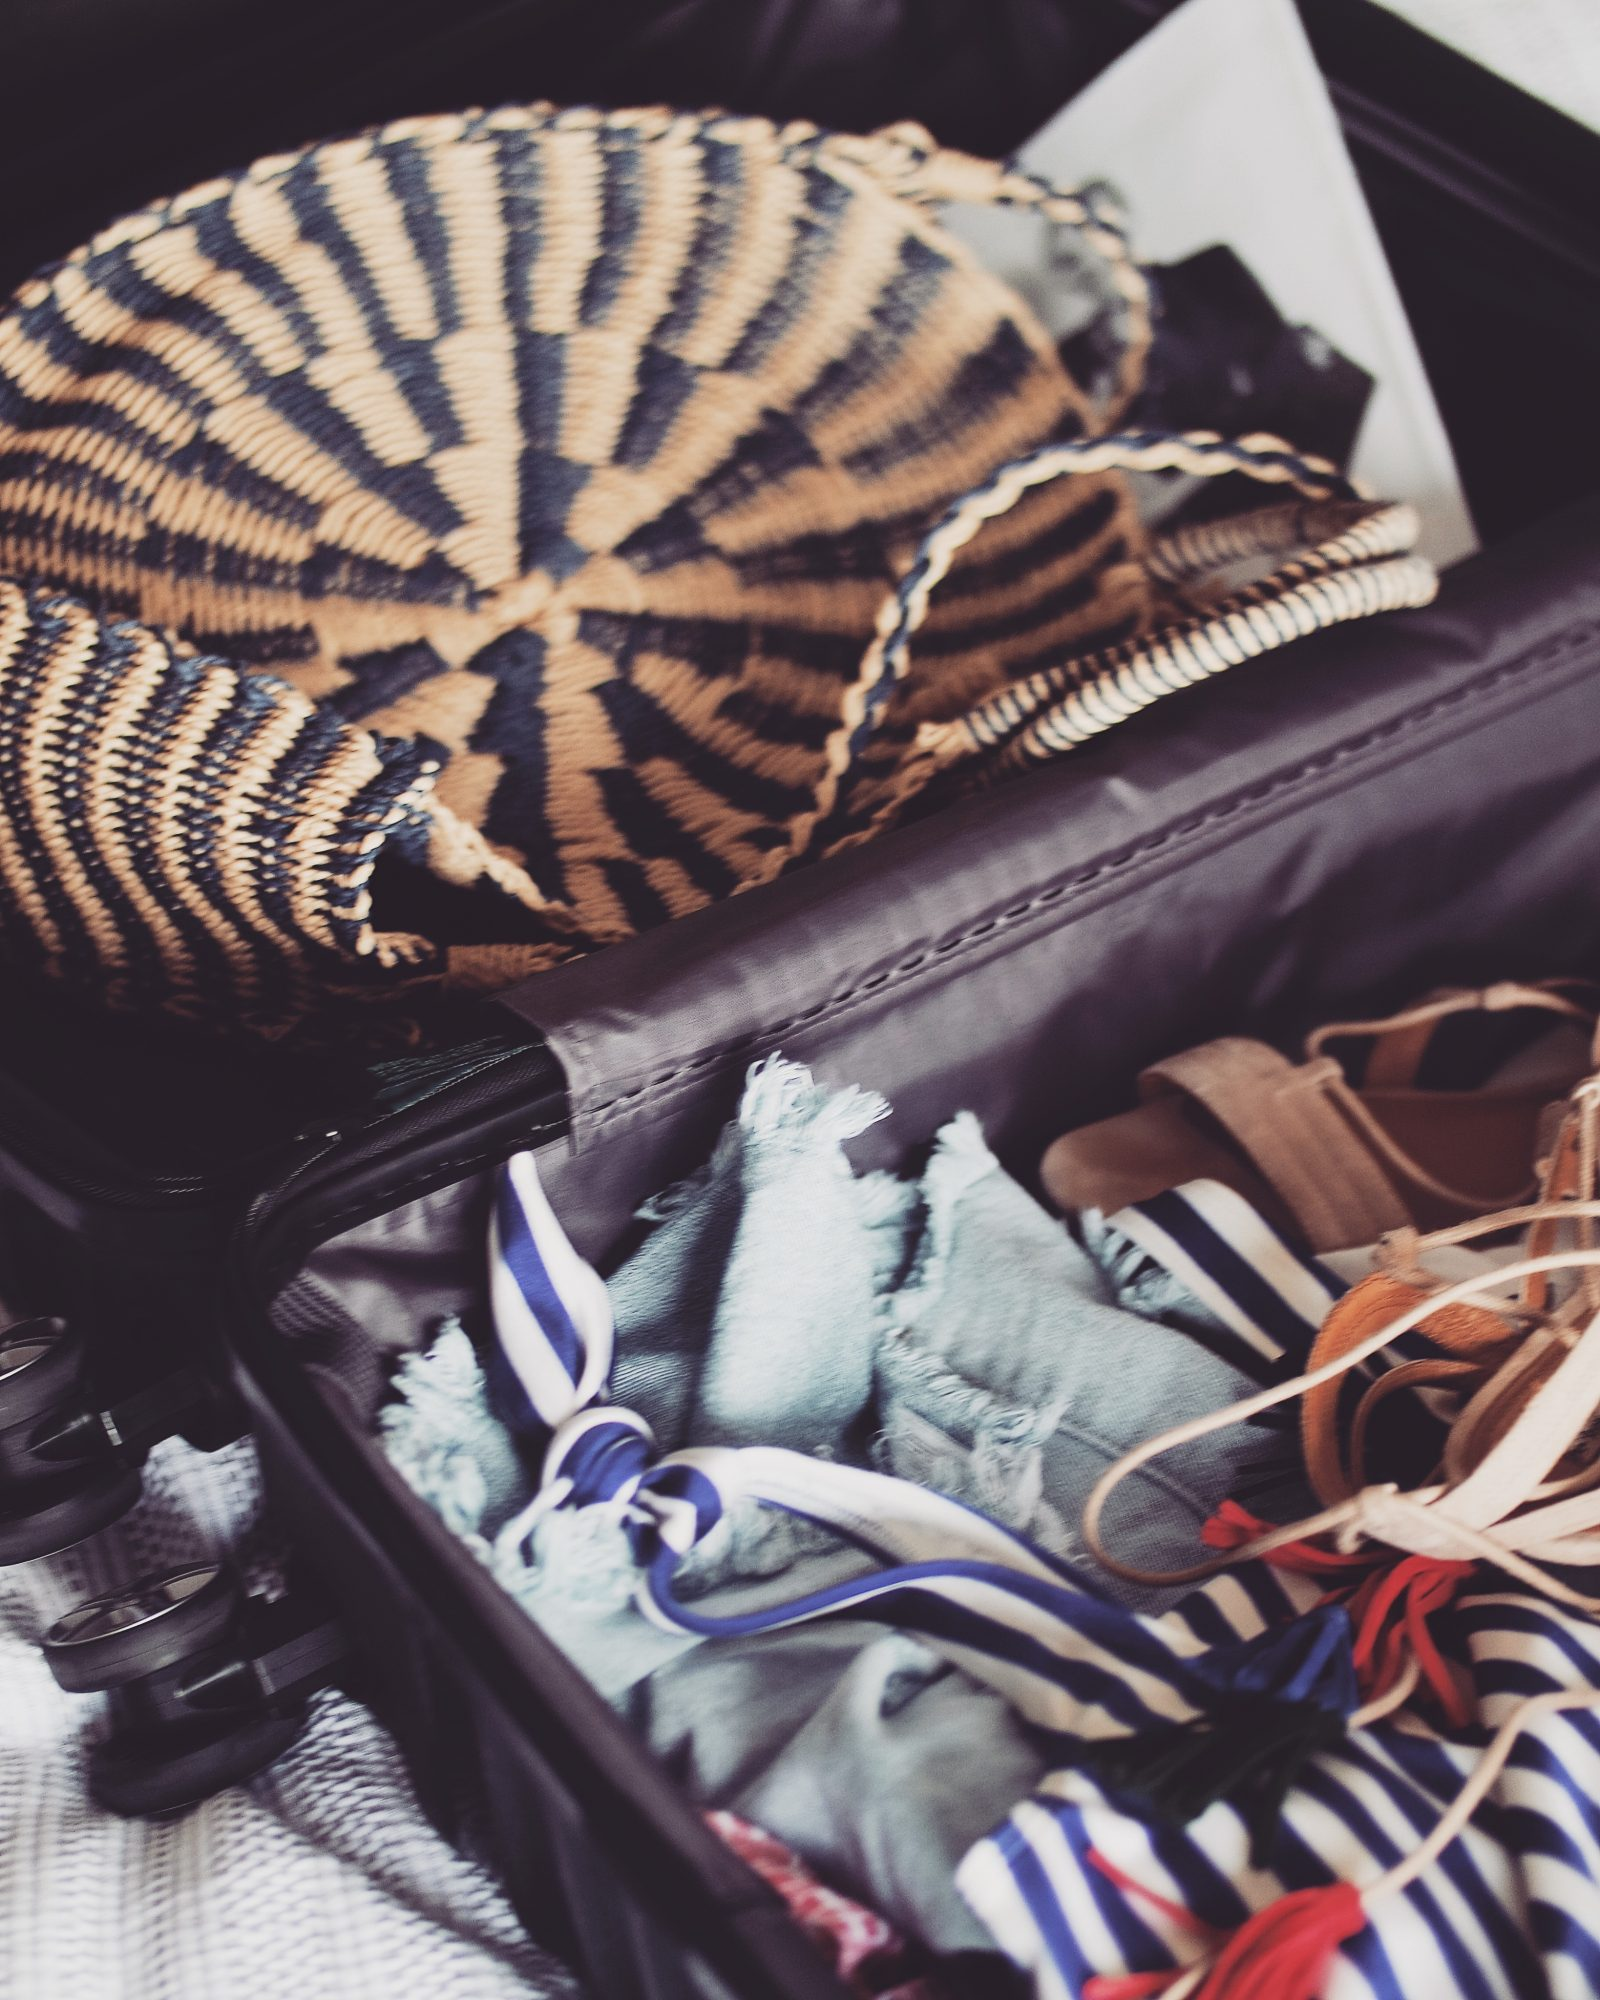 The 5 Things Every Fashionista Needs On Their Holiday Packing List